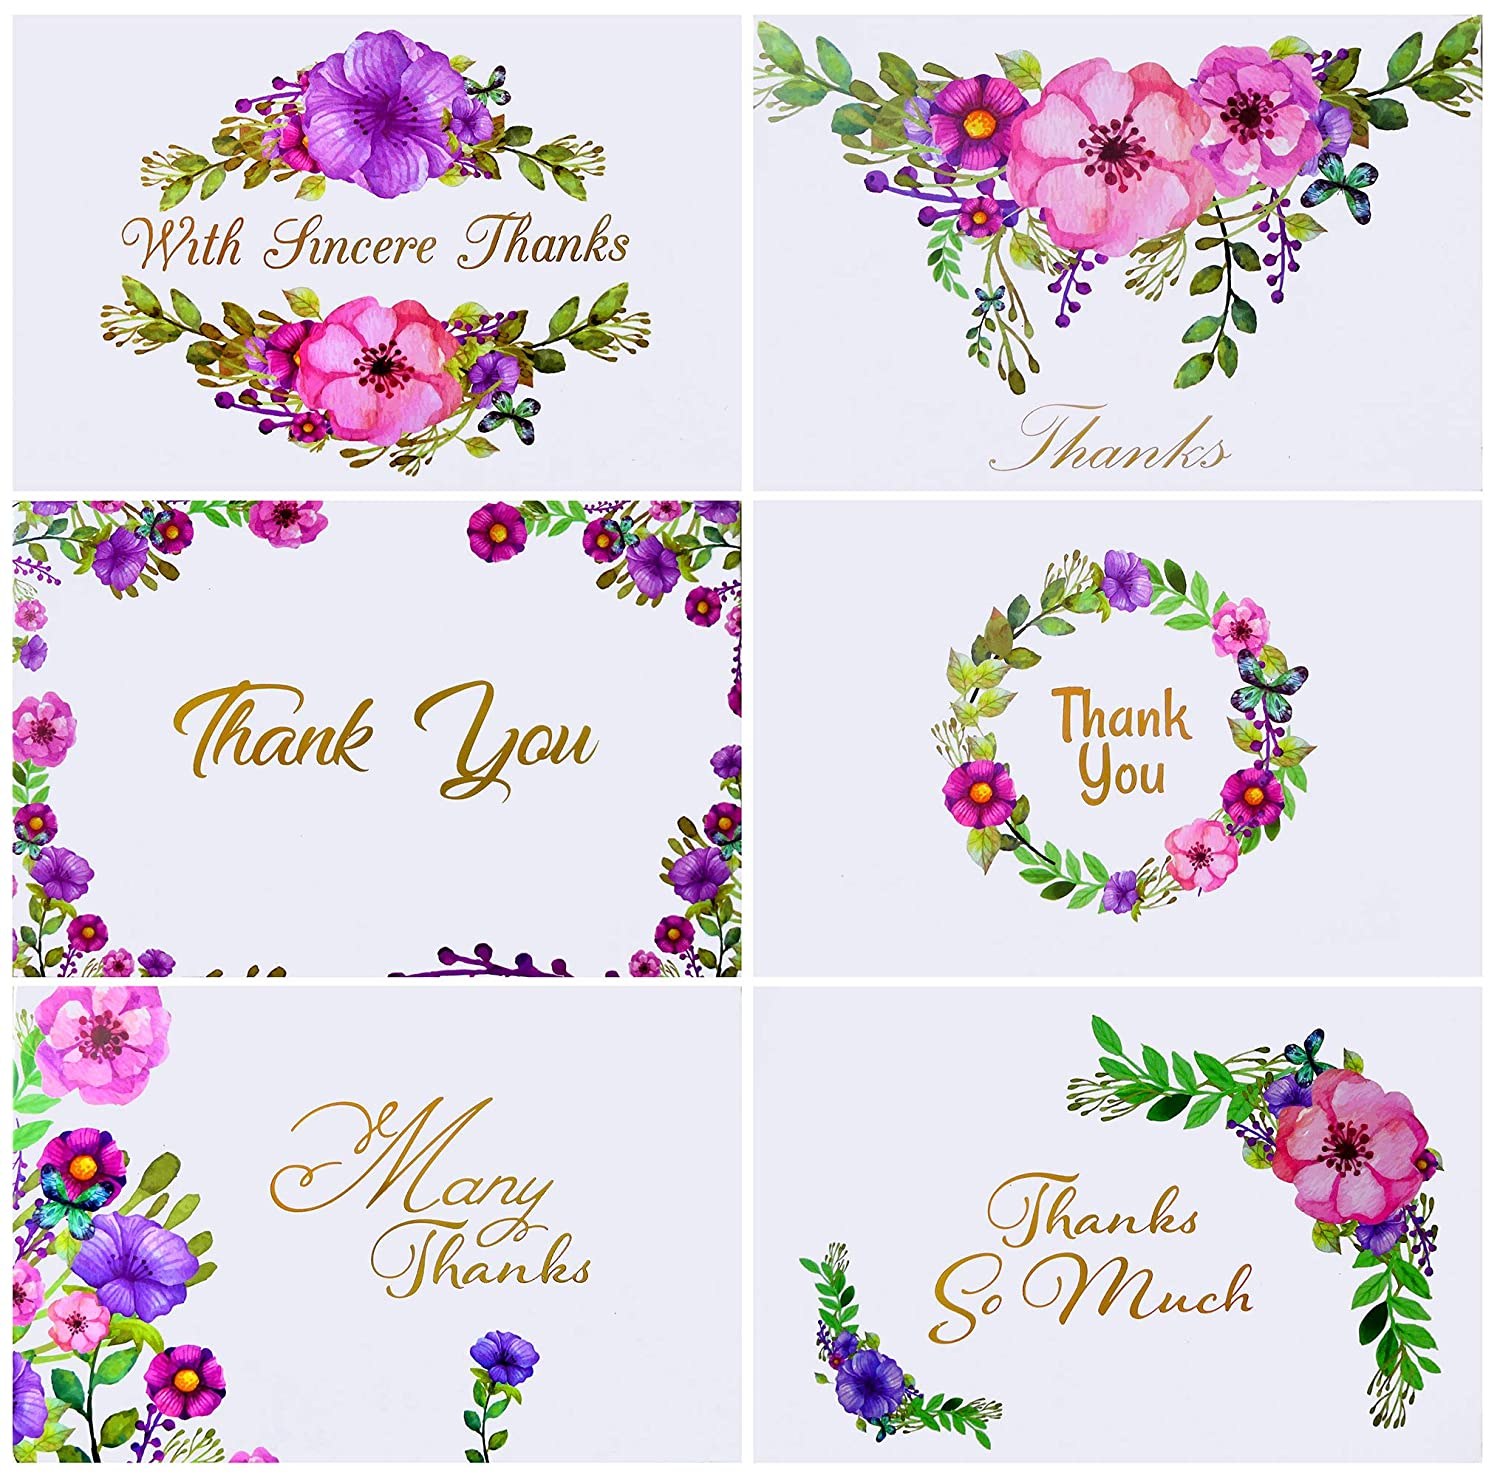 Momenttz Thank You Note Cards - Gold Foil Letters 48 Pack - Blank Greeting Cards & Envelopes - 6 Designs - 4 x 6 in - for Baby & Bridal Shower, Birthday, Graduation, Engagement, Wedding, Corporate Level Up